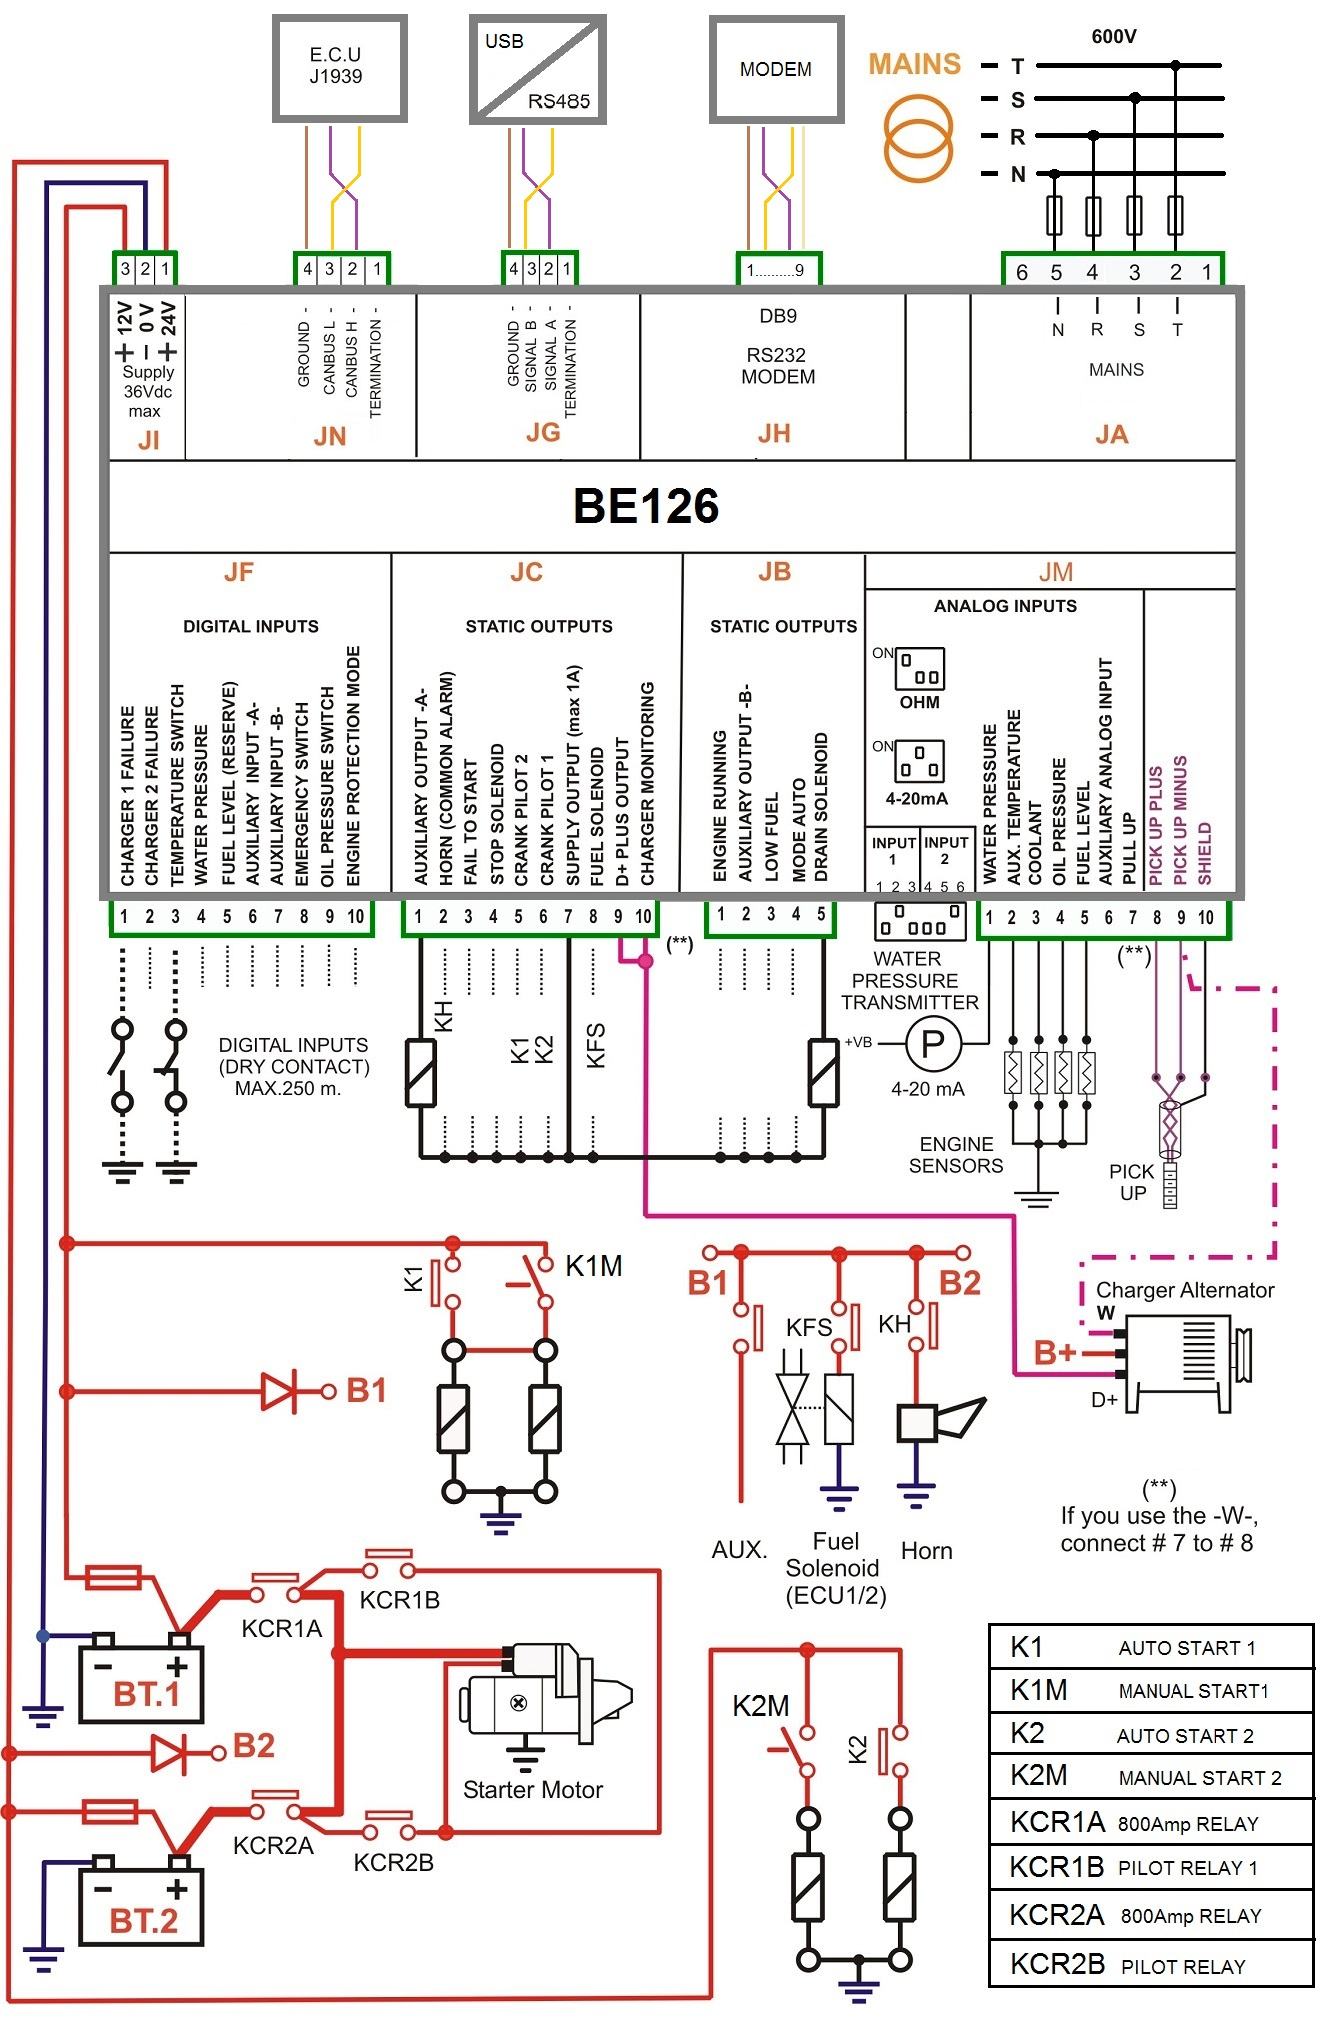 NFPA20 fire pump controller wiring diagram control wiring diagrams lighting control panel wiring diagram control panel wiring diagram pdf at soozxer.org